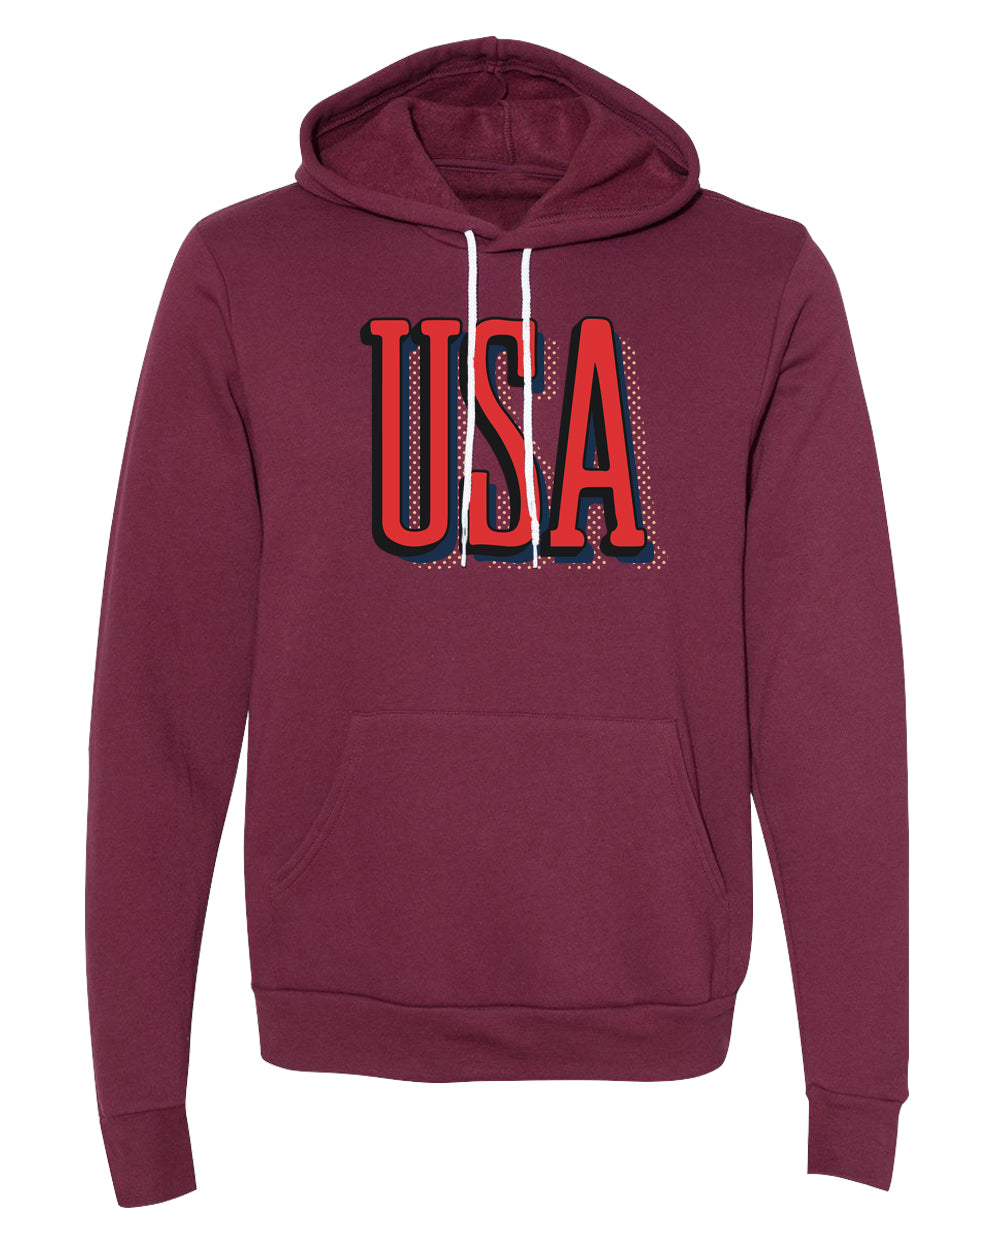 Sweater - USA Patriot Hoodie, 4th Of July Sweater, Unisex Graphic Hoodies